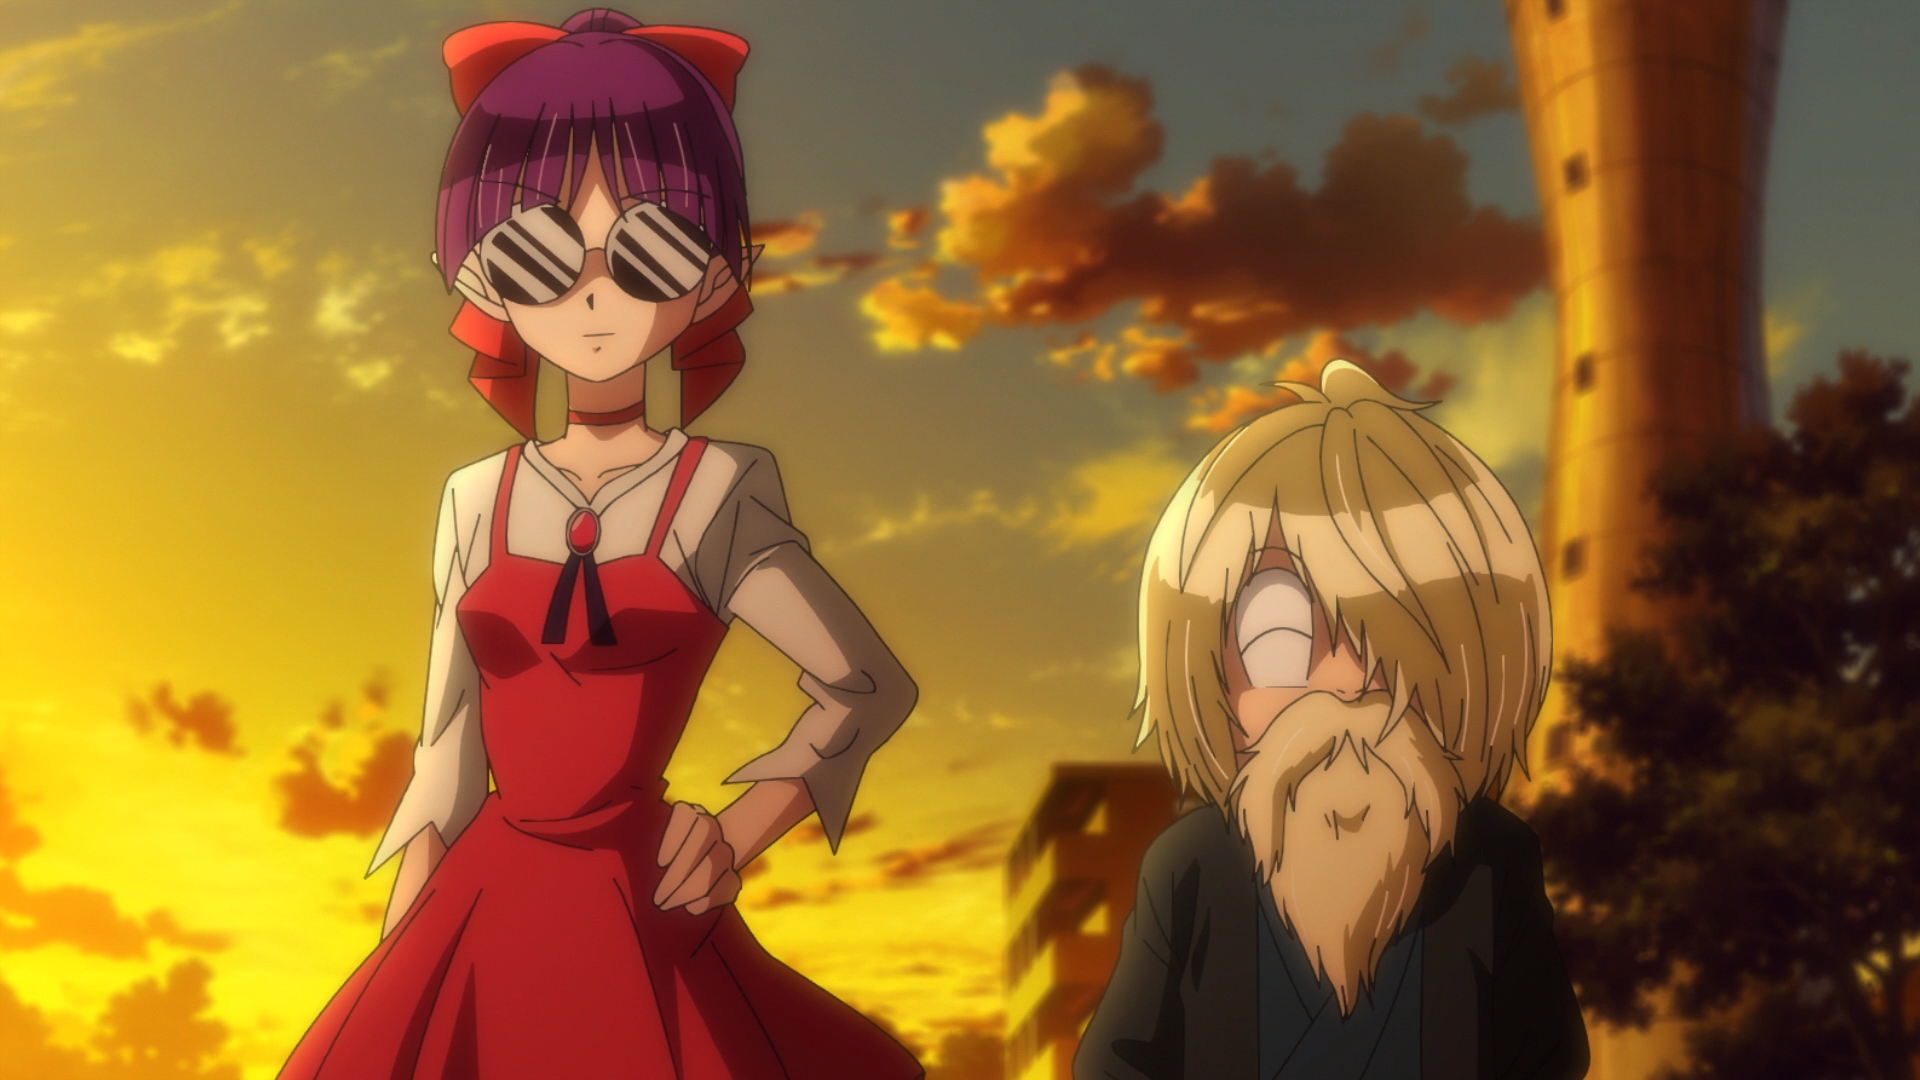 Header image showing Kitaro and Neko Musume in disguise